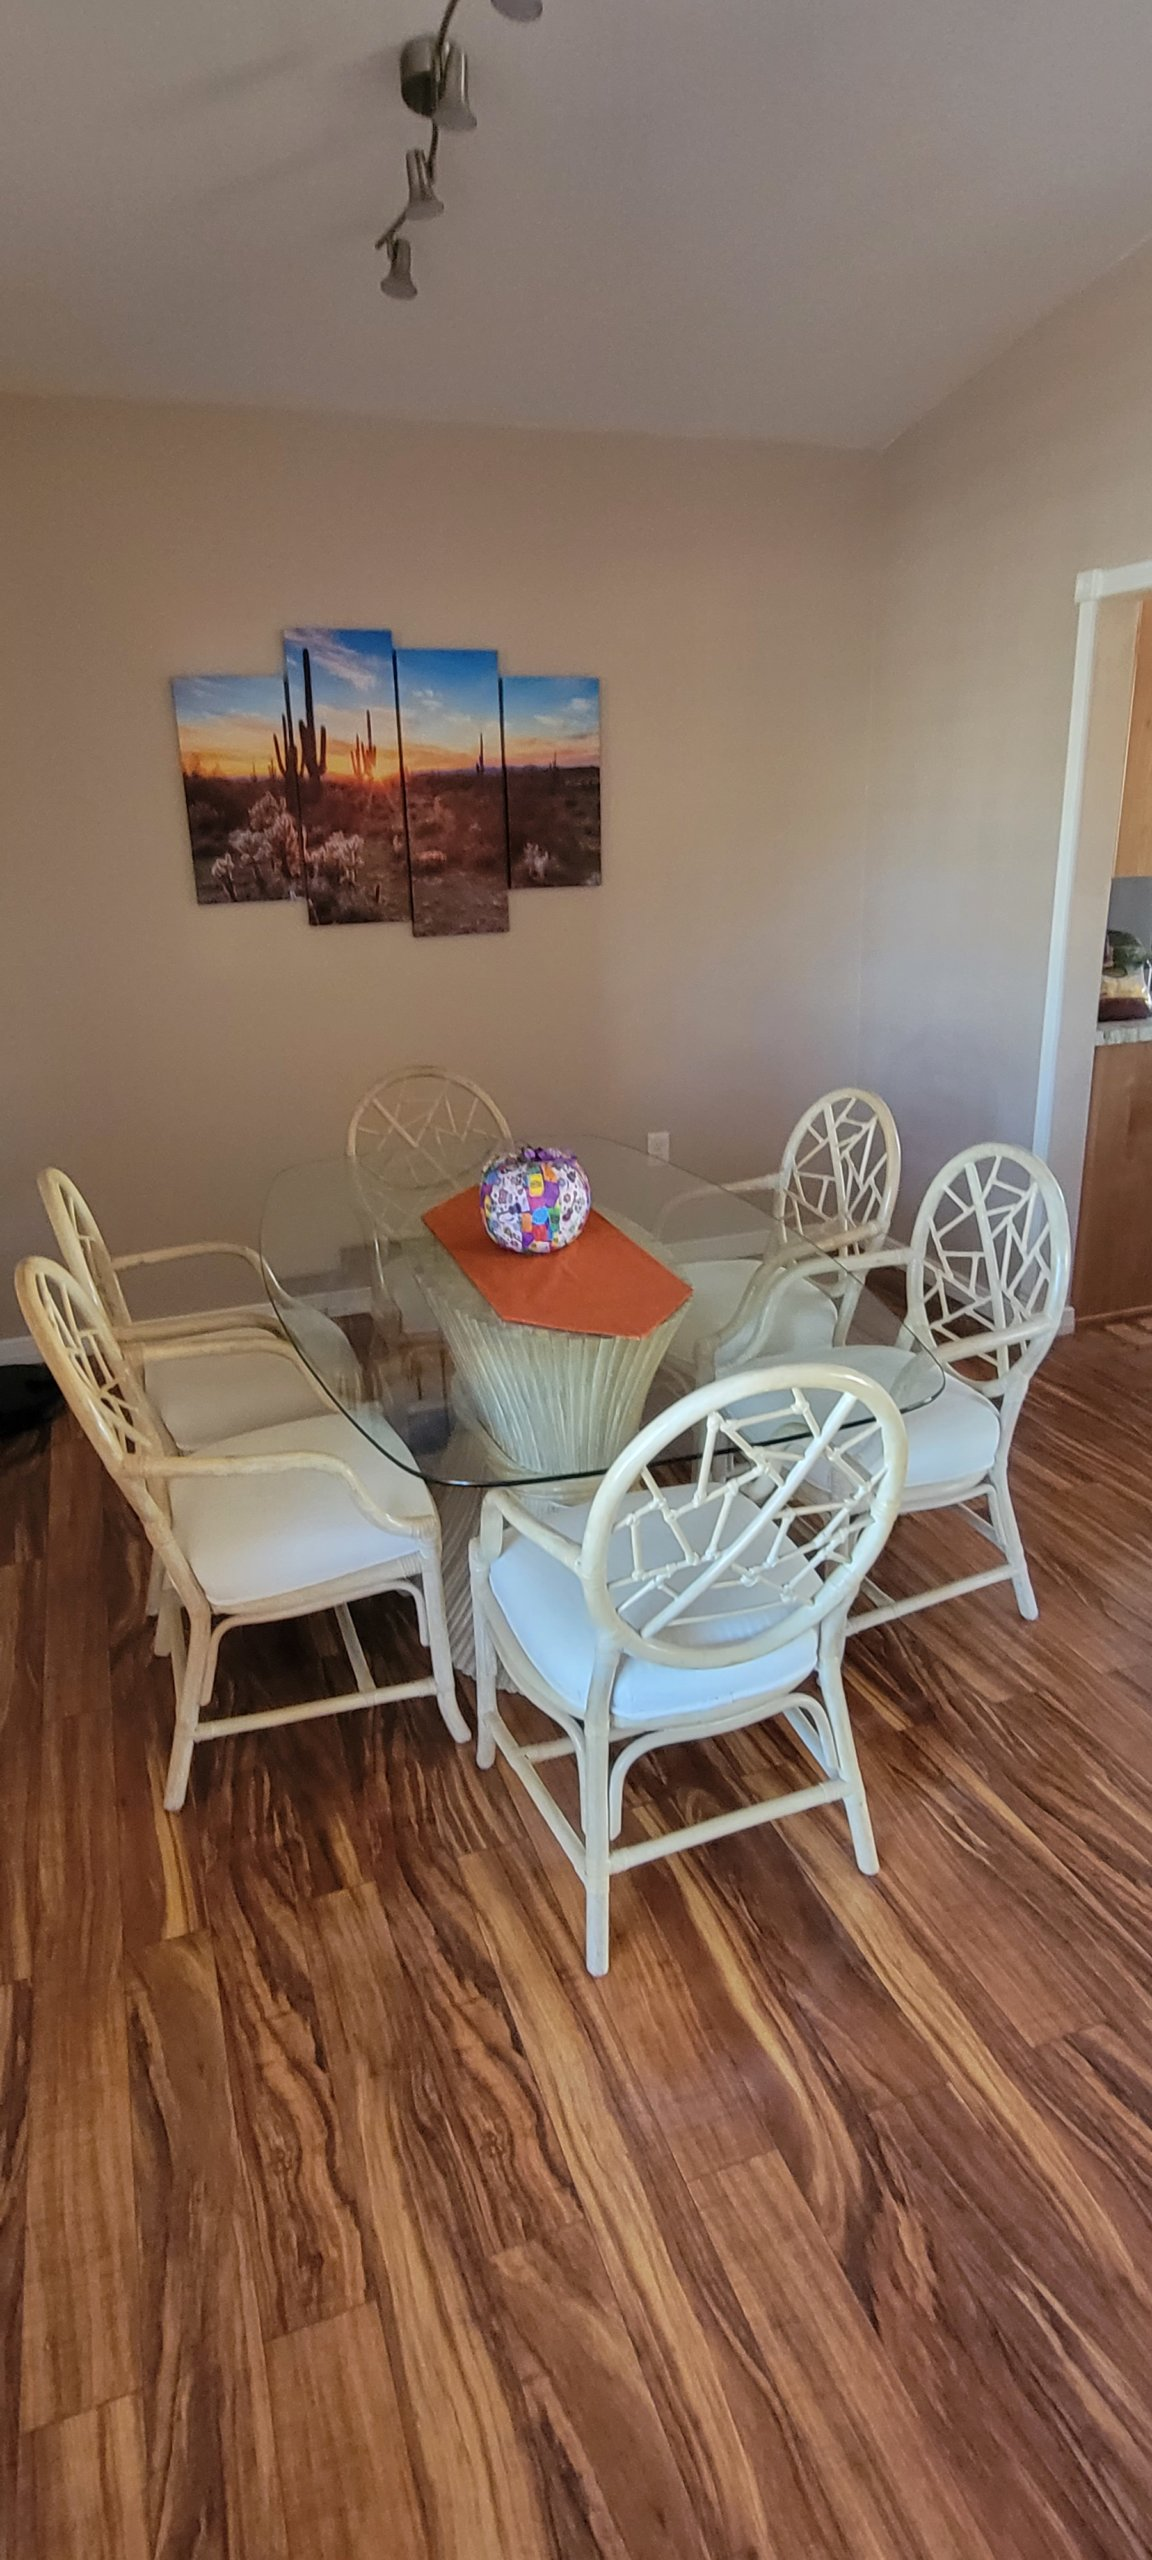 Bamboo Dining Table & 6 Chairs – $250